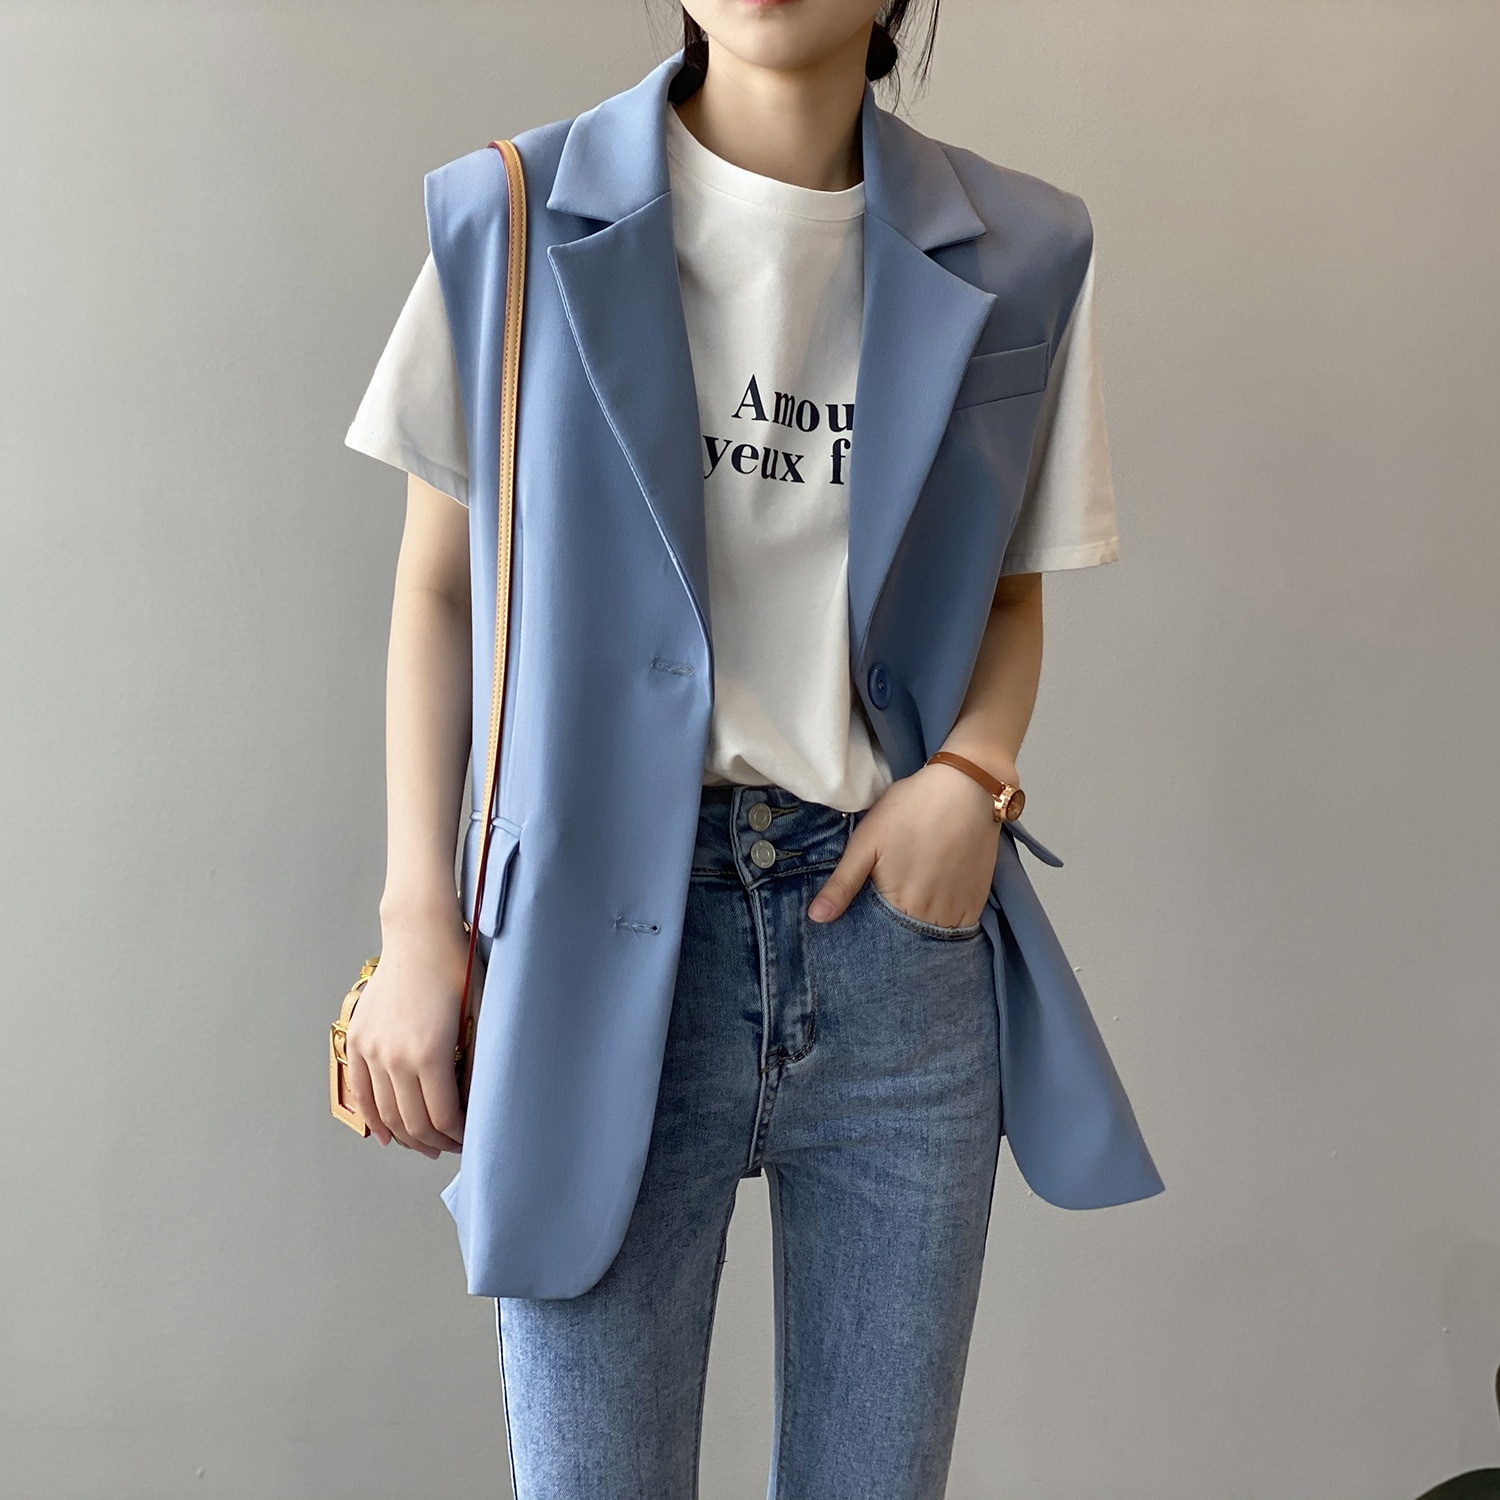 CMAZ New 2020 Women Simply Sleeveless Double Breasted Vest Jacket Office Ladies Wear Casual Suit Coa